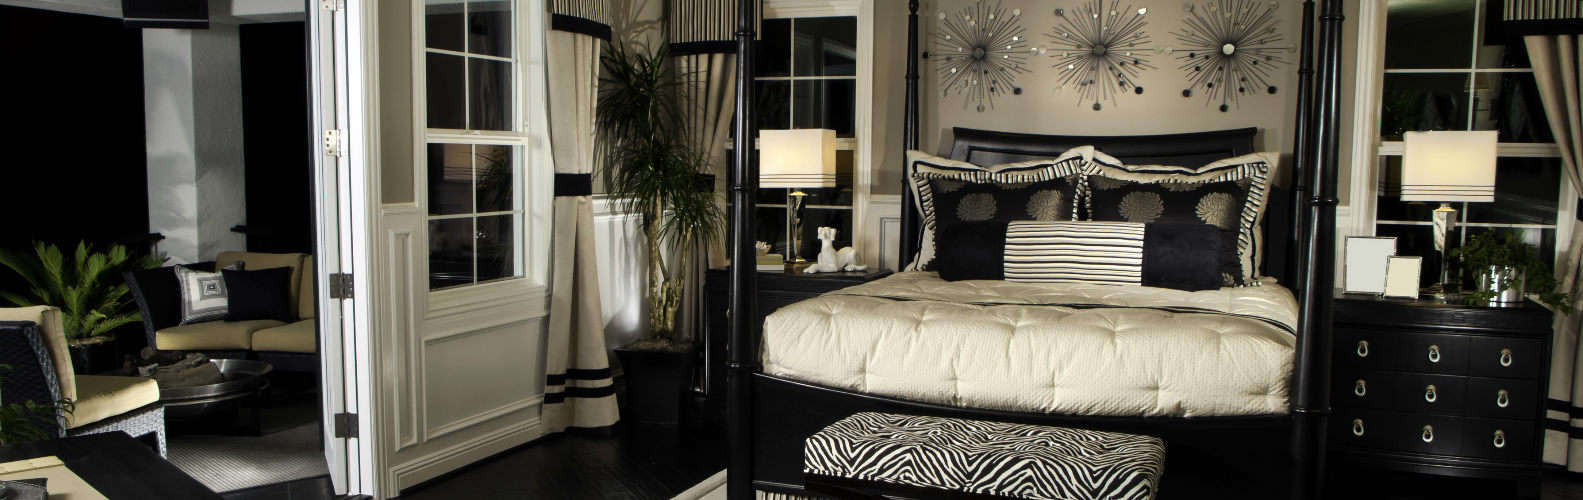 Idea Gallery - Master Bedrooms